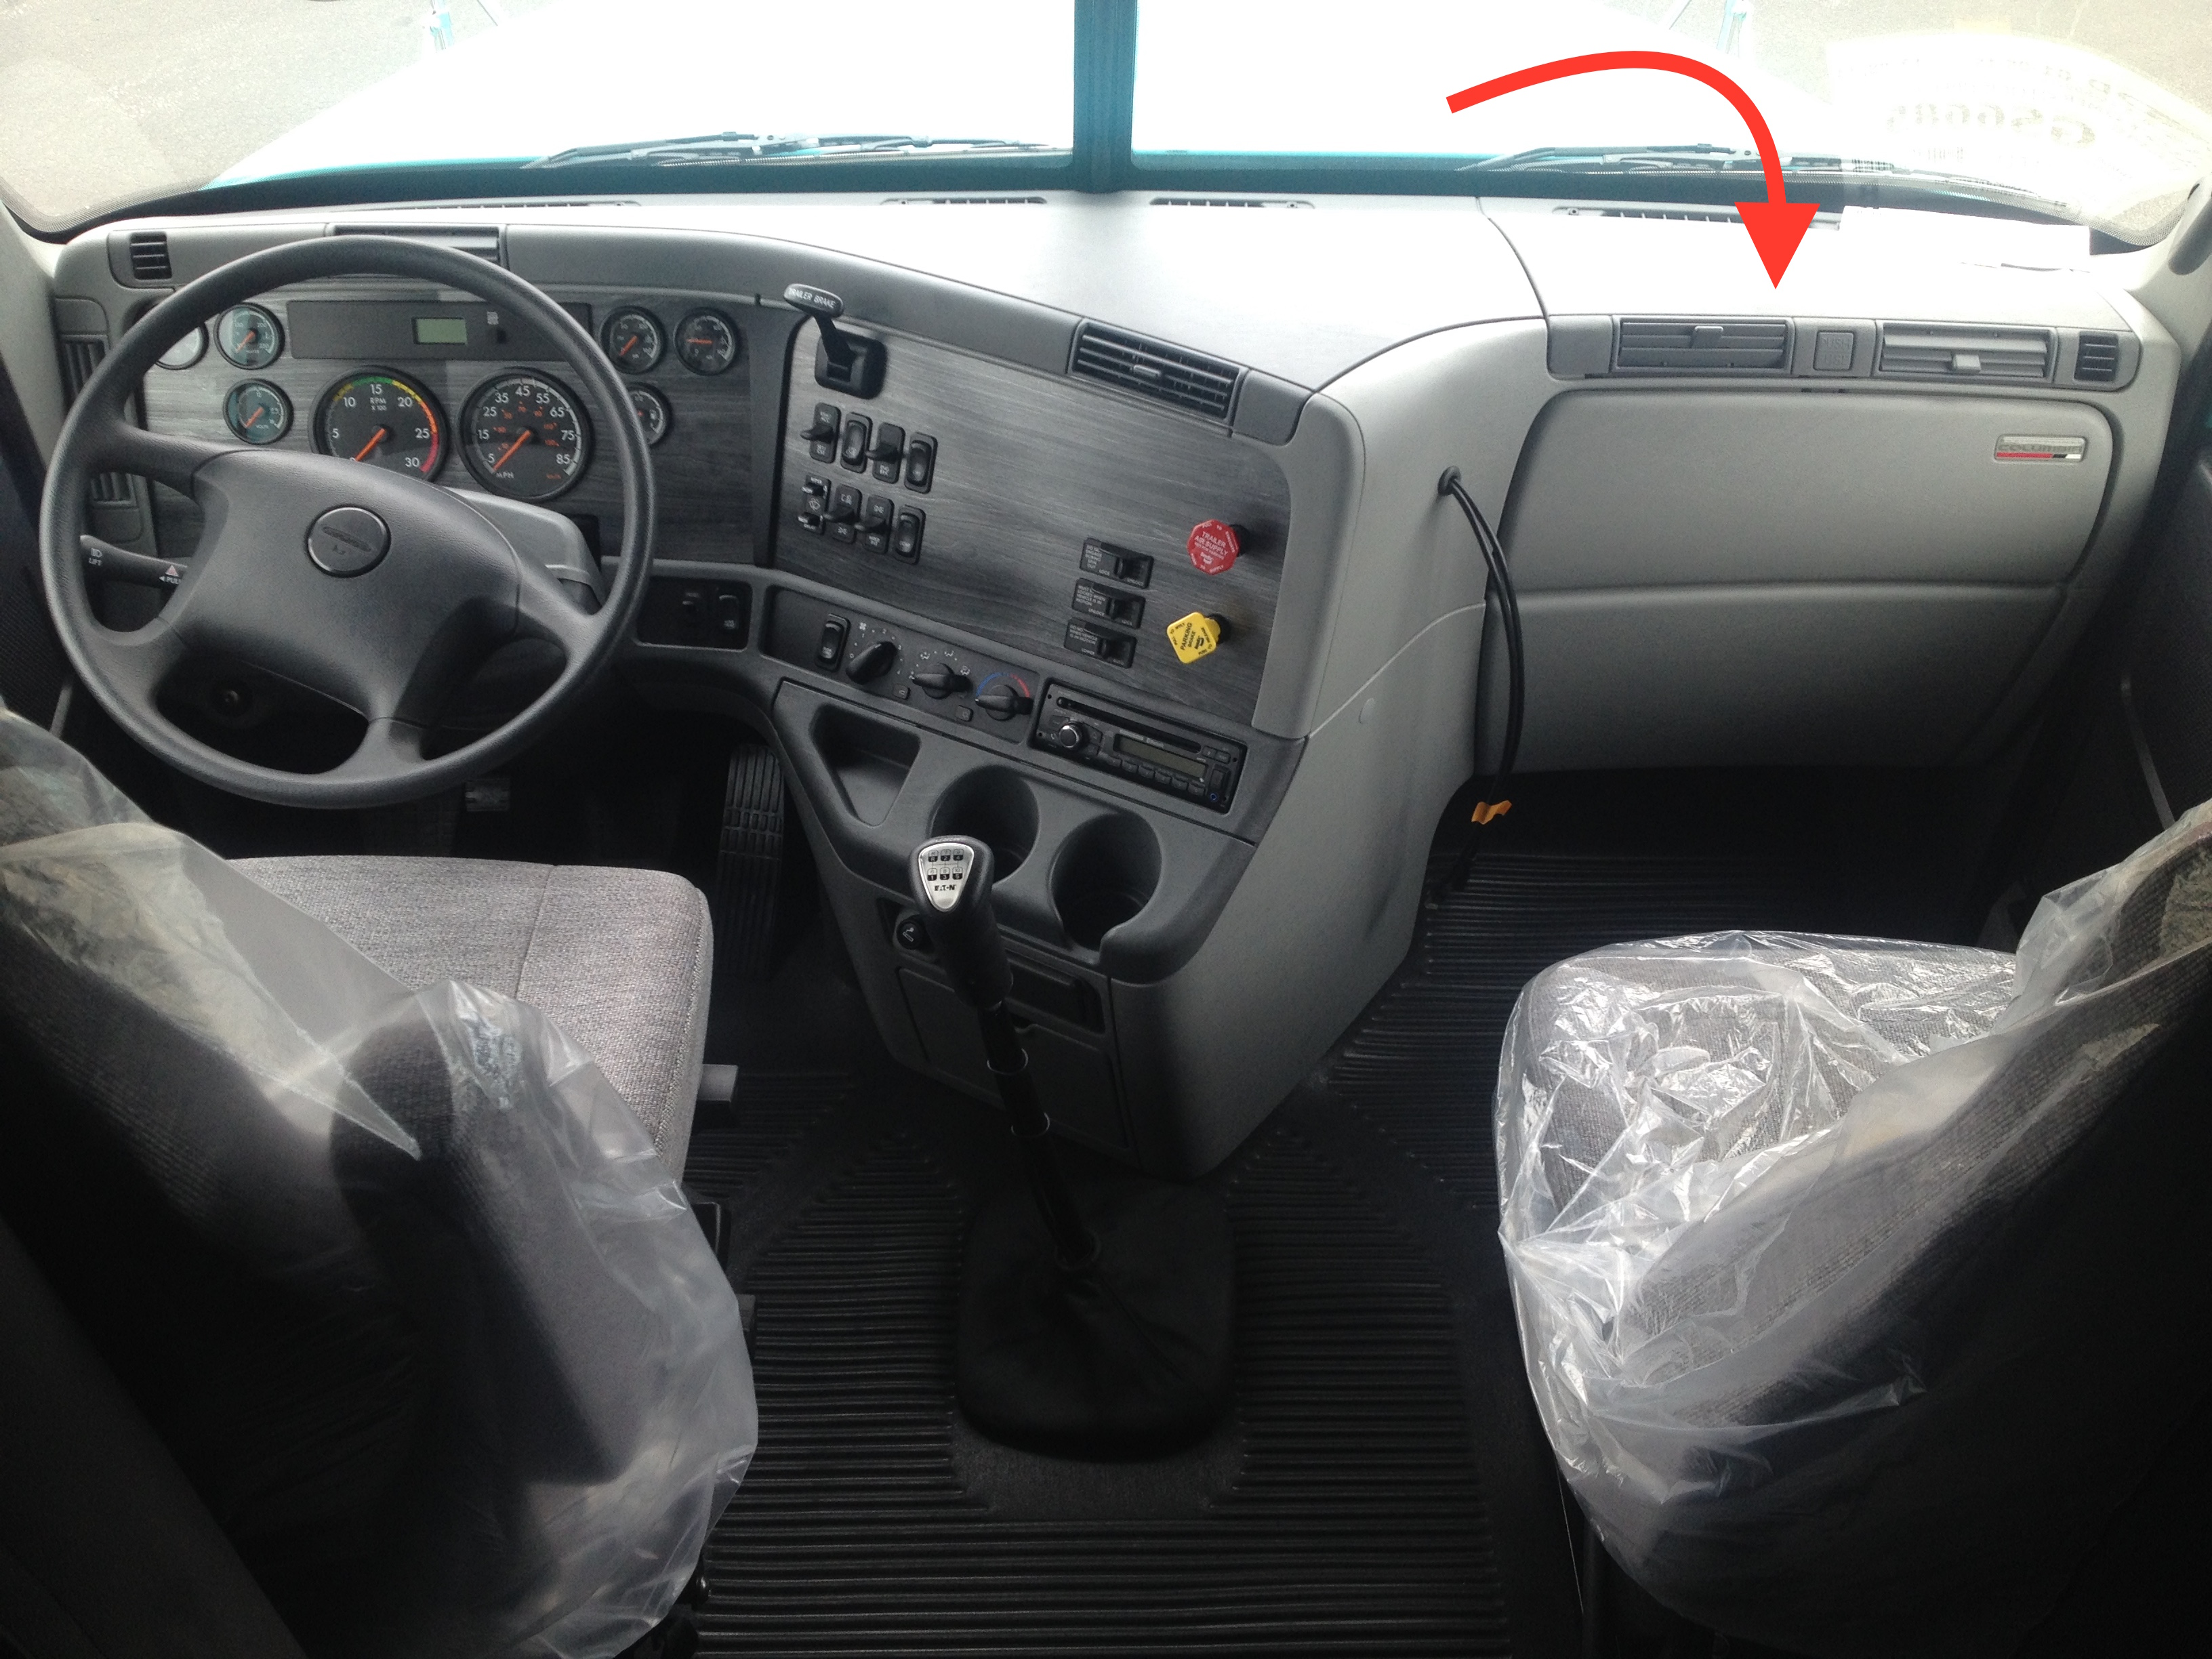 Electrical dash cover freightliner century and columbia - 2007 freightliner columbia interior ...